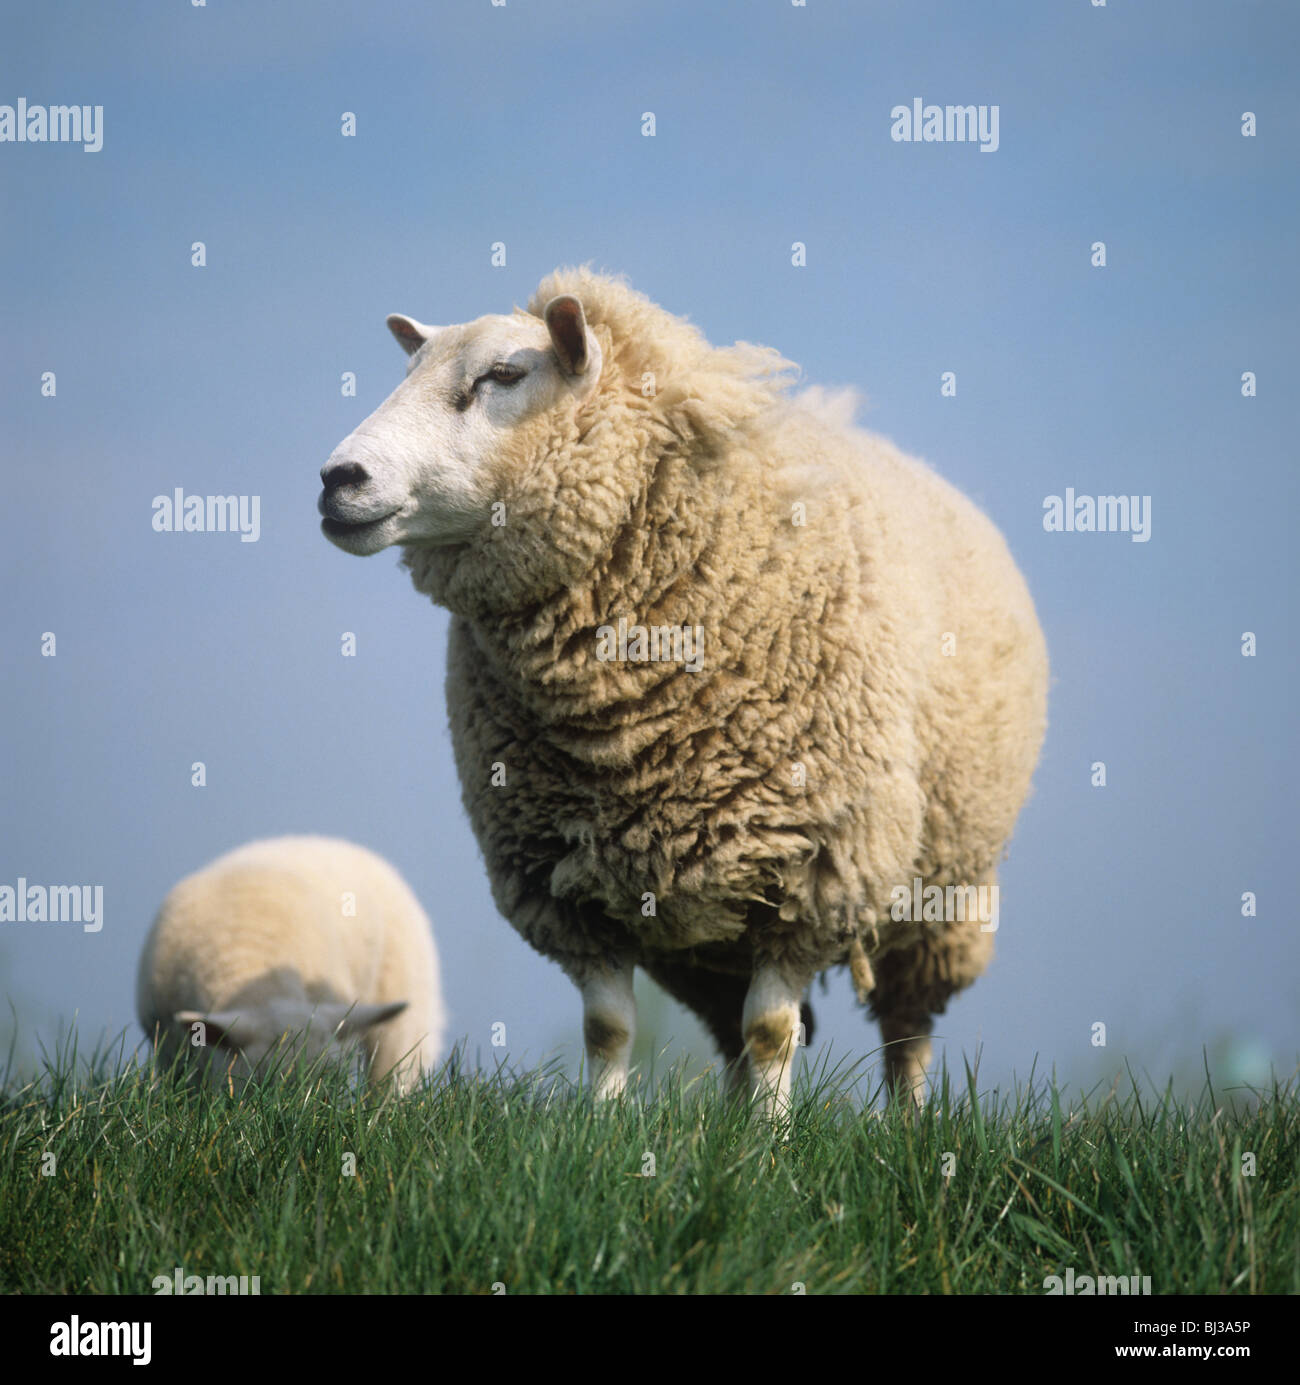 Ewe sheep on grass on a canal bank set against the sky, Netherlands - Stock Image